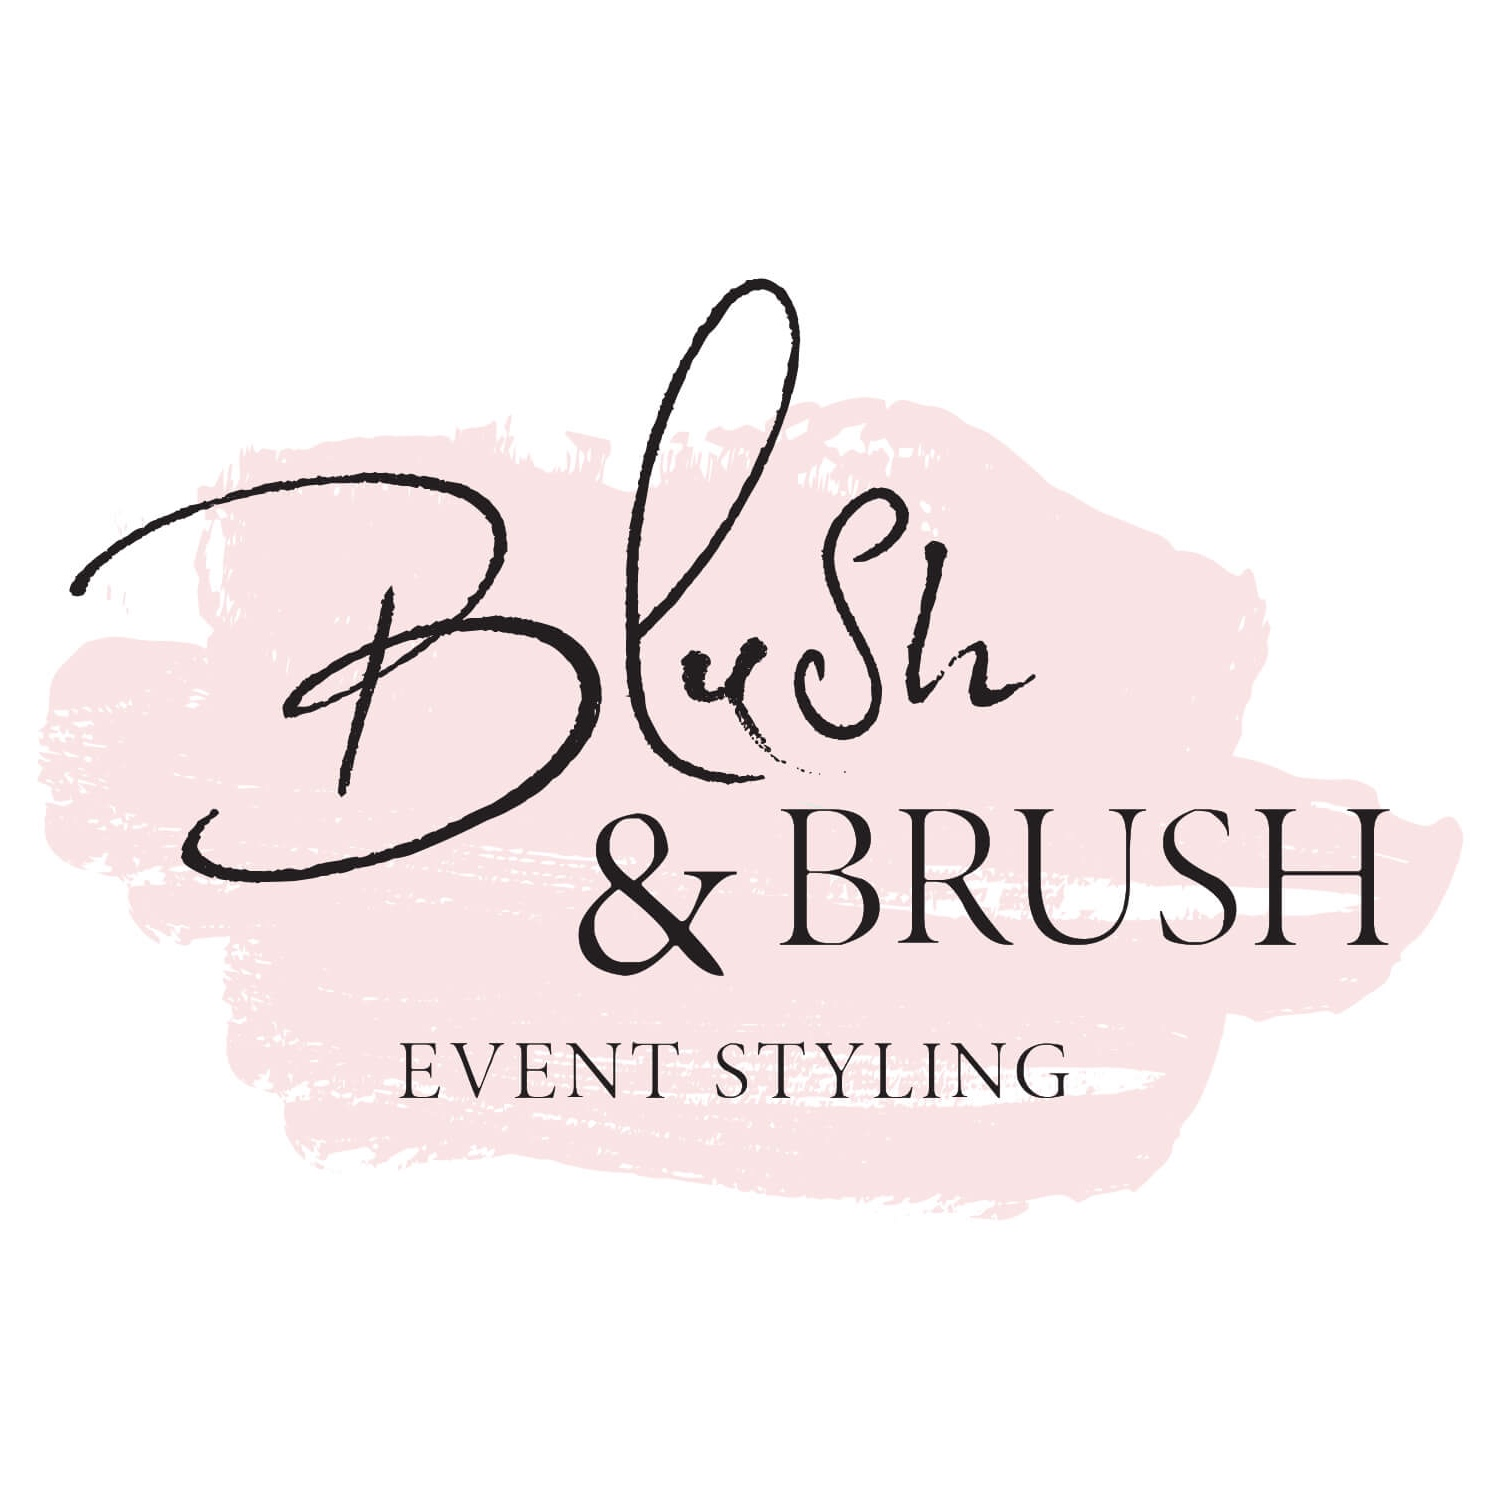 Blush & Brush Logo & Branding -